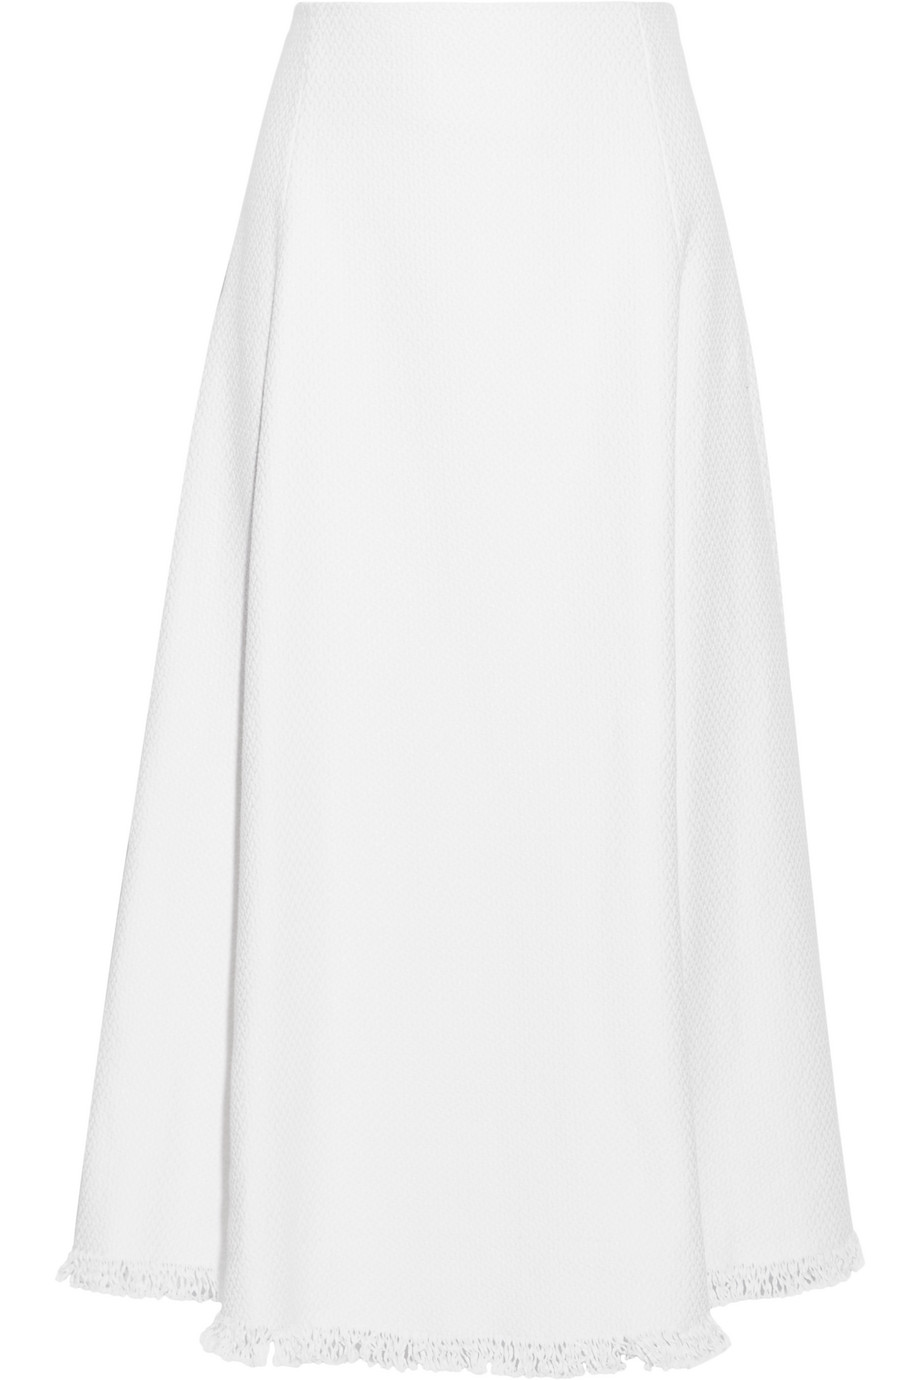 Adam Lippes Fringed Linen and Cotton-Blend Tweed Midi Skirt, White, Women's, Size: 8